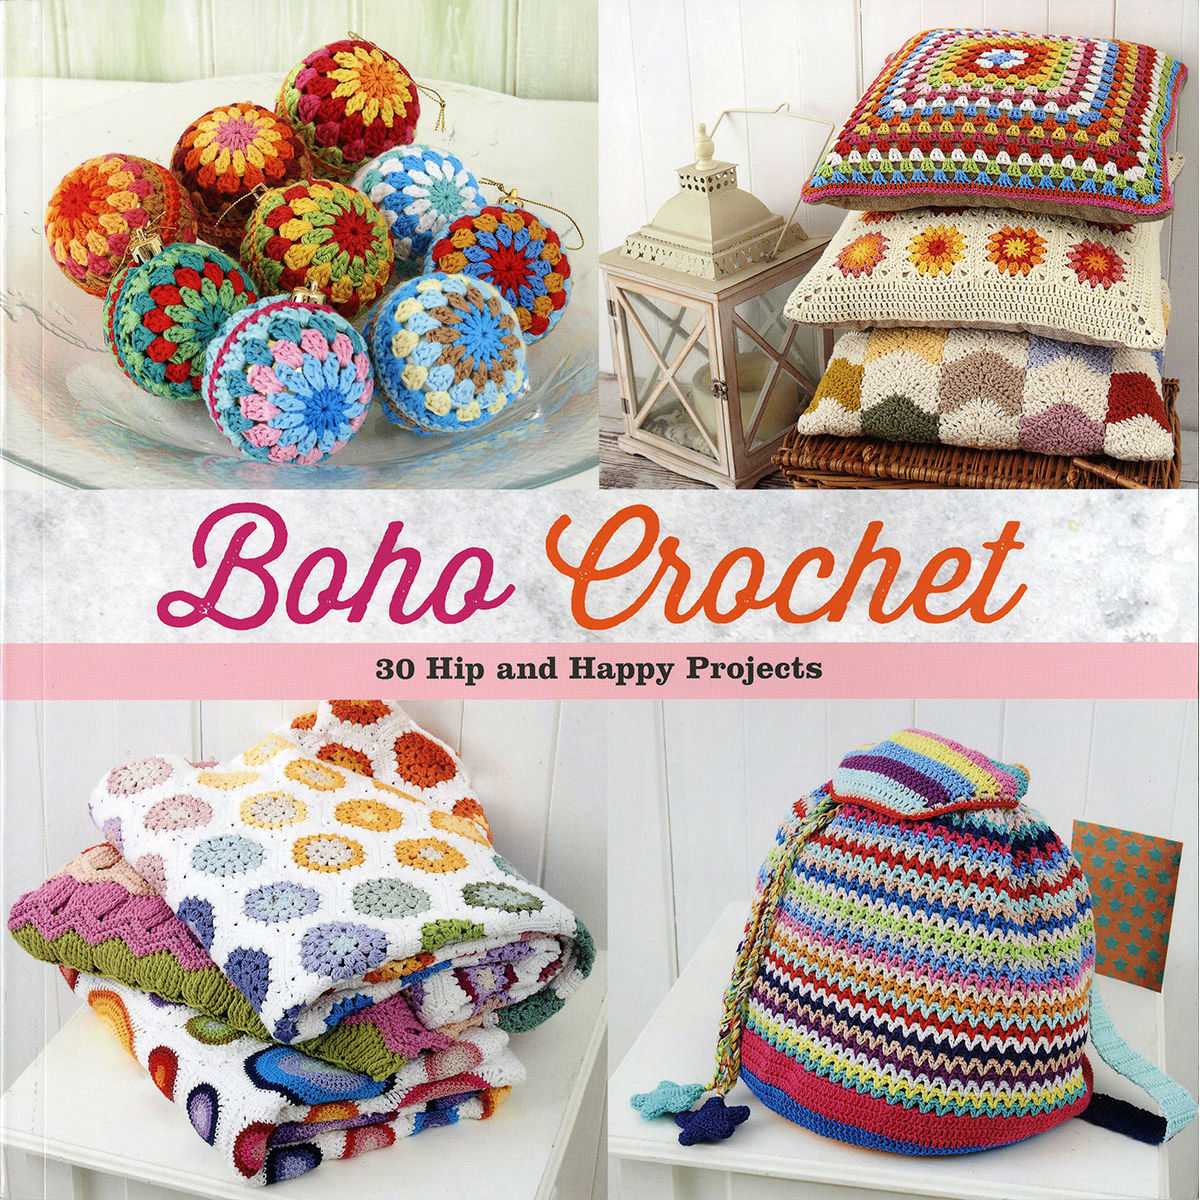 Boho Crochet Patterns : martingale company boho crochet martingale company boho crochet is a